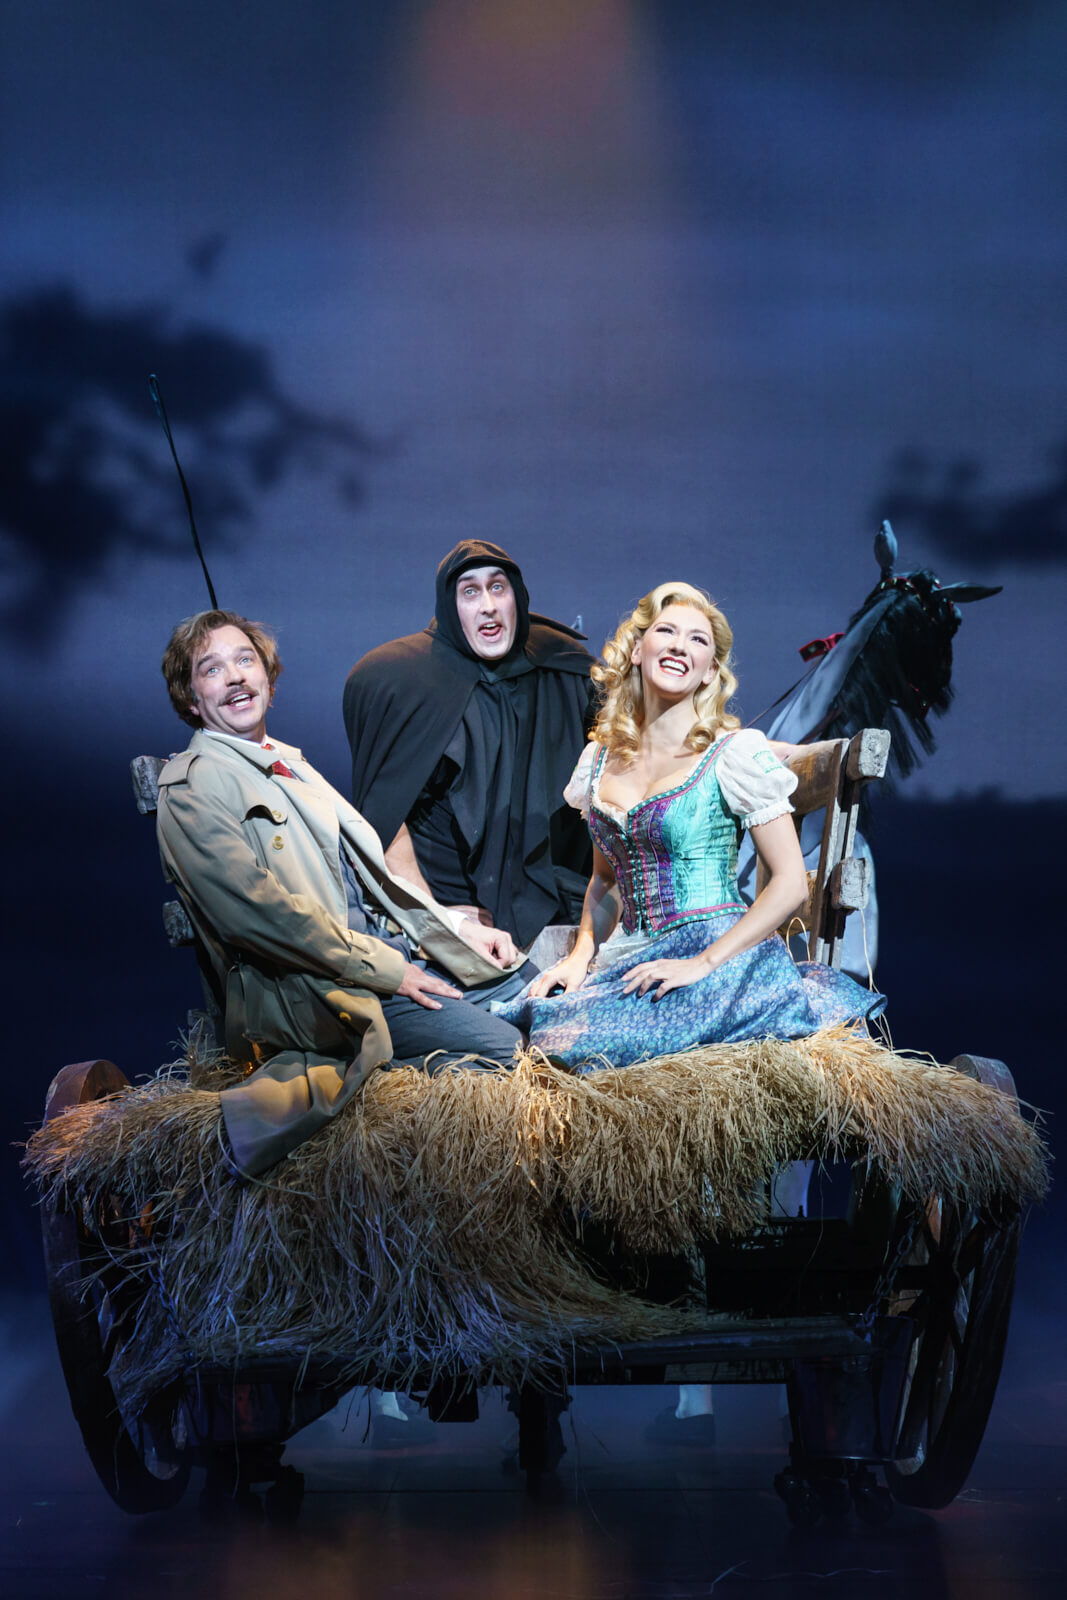 """Dr. Frankenstein (Hadley Fraser), Igor (Ross Noble), and Inga (Summer Strallen) sing """"Roll in the Hay,"""" having a good time at the back of a horse-drawn carriage full of hay."""